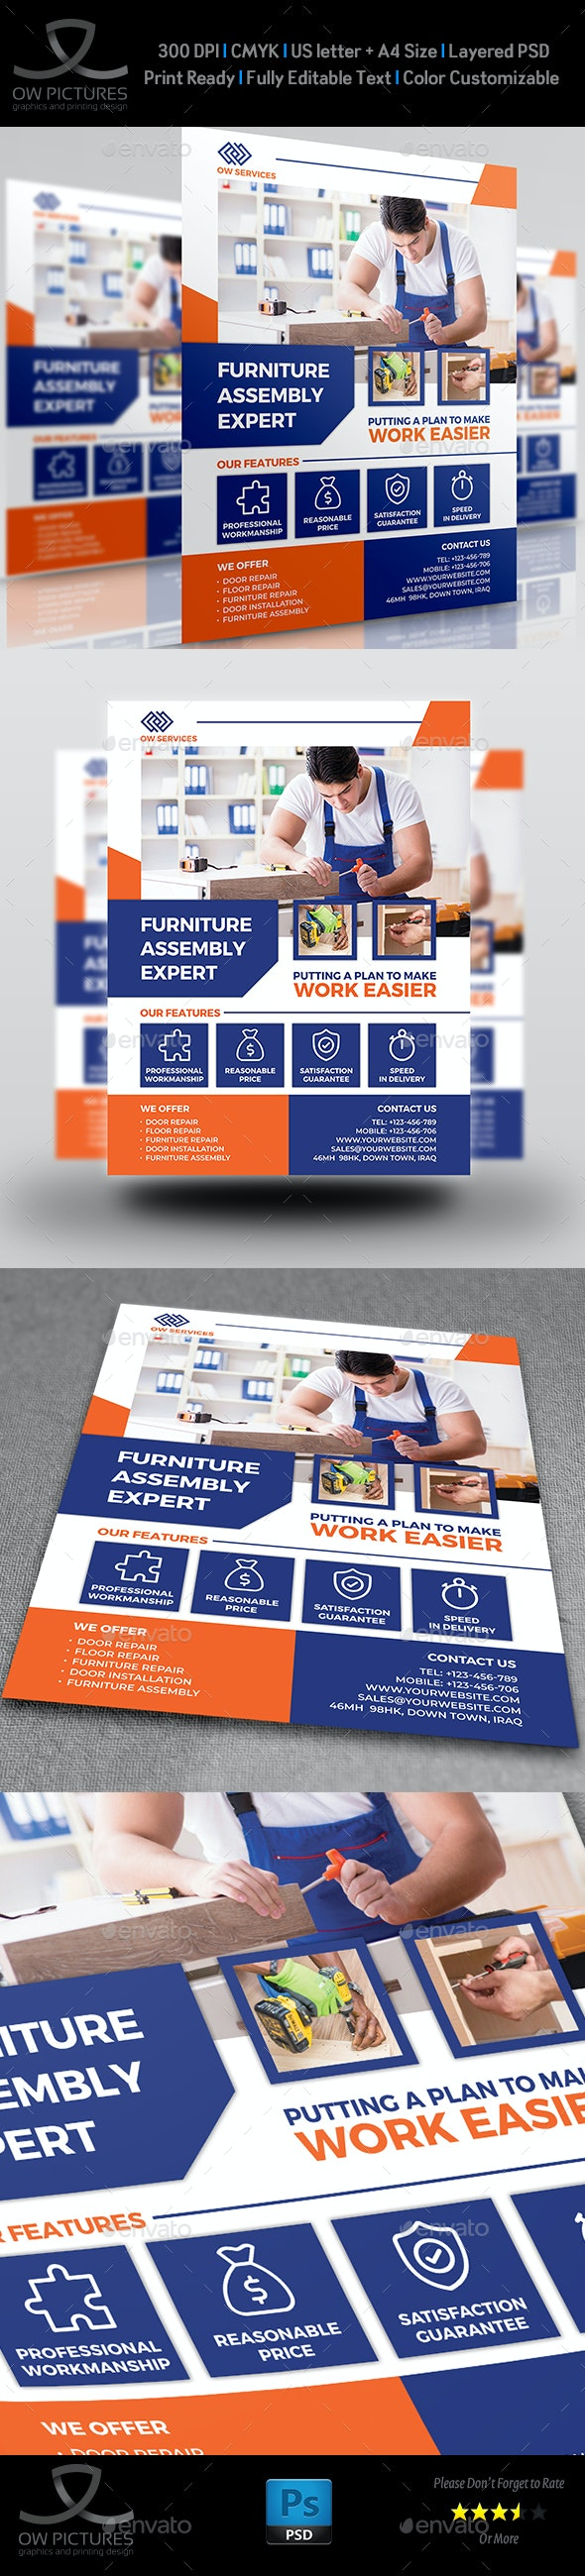 Furniture Assembly Services Flyer Template - Commerce Flyers